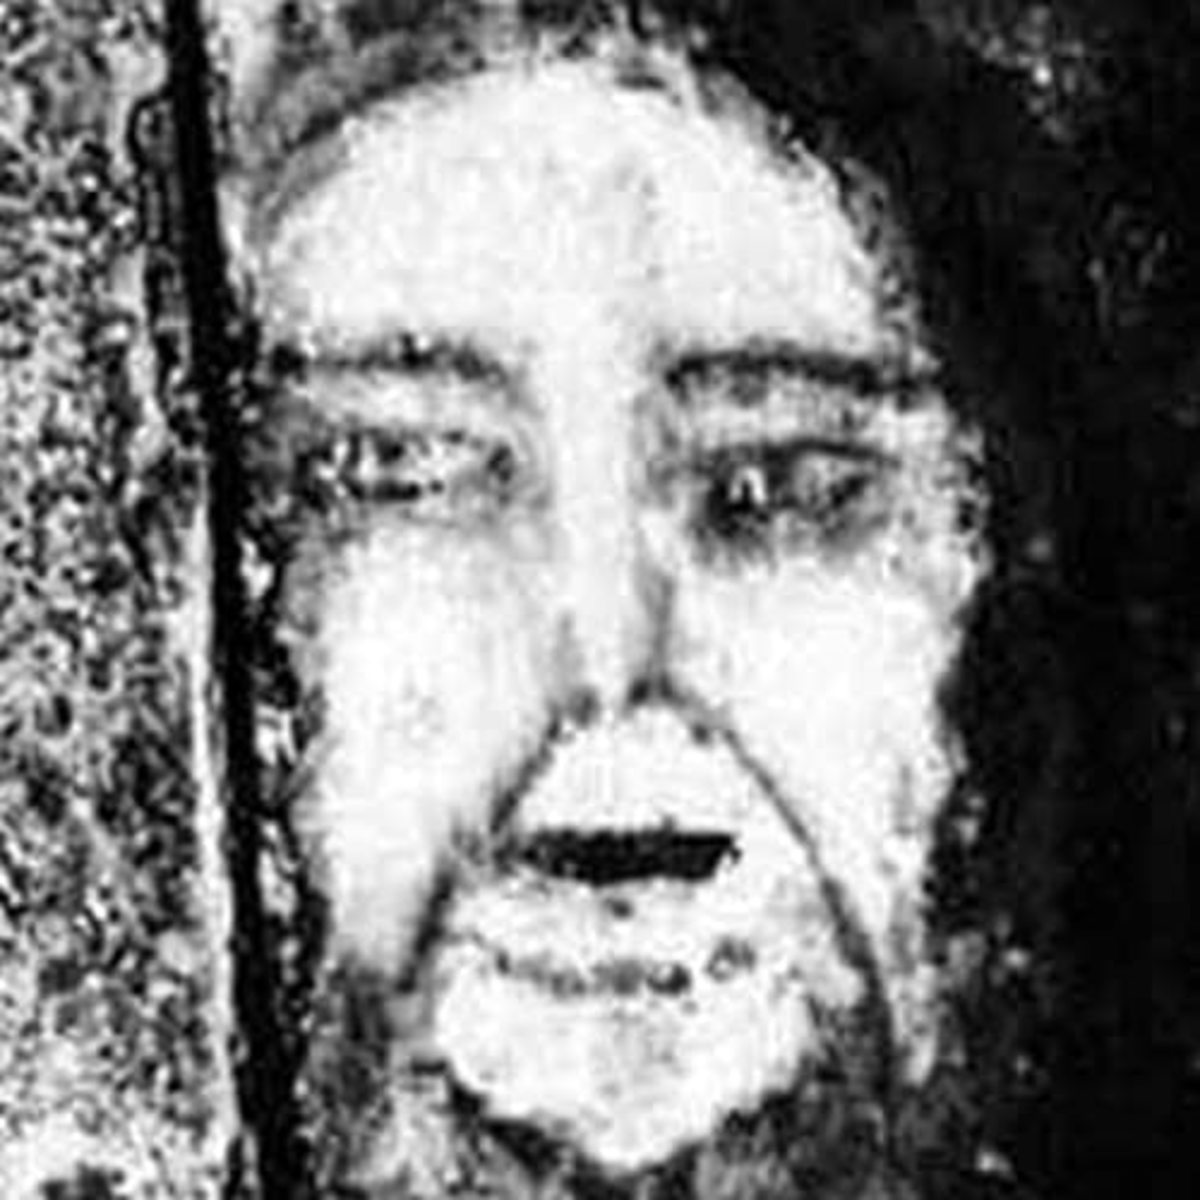 The Mysterious, and Creepy Faces of Belmez